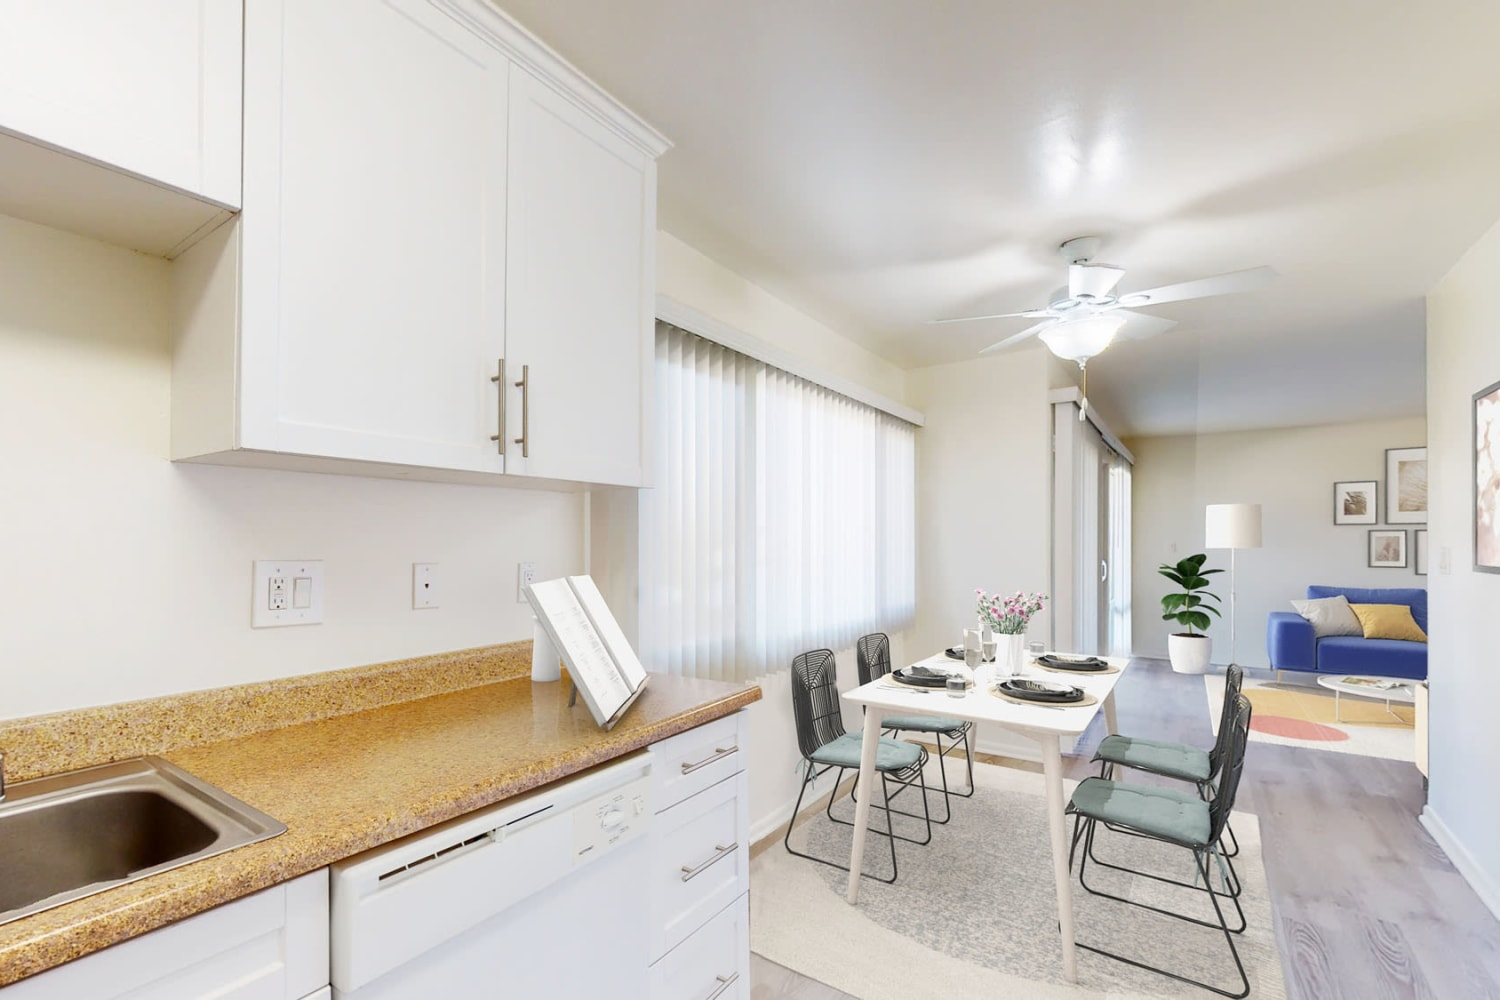 One bedroom home's kitchen with bright white cabinetry at West Park Village in Los Angeles, California